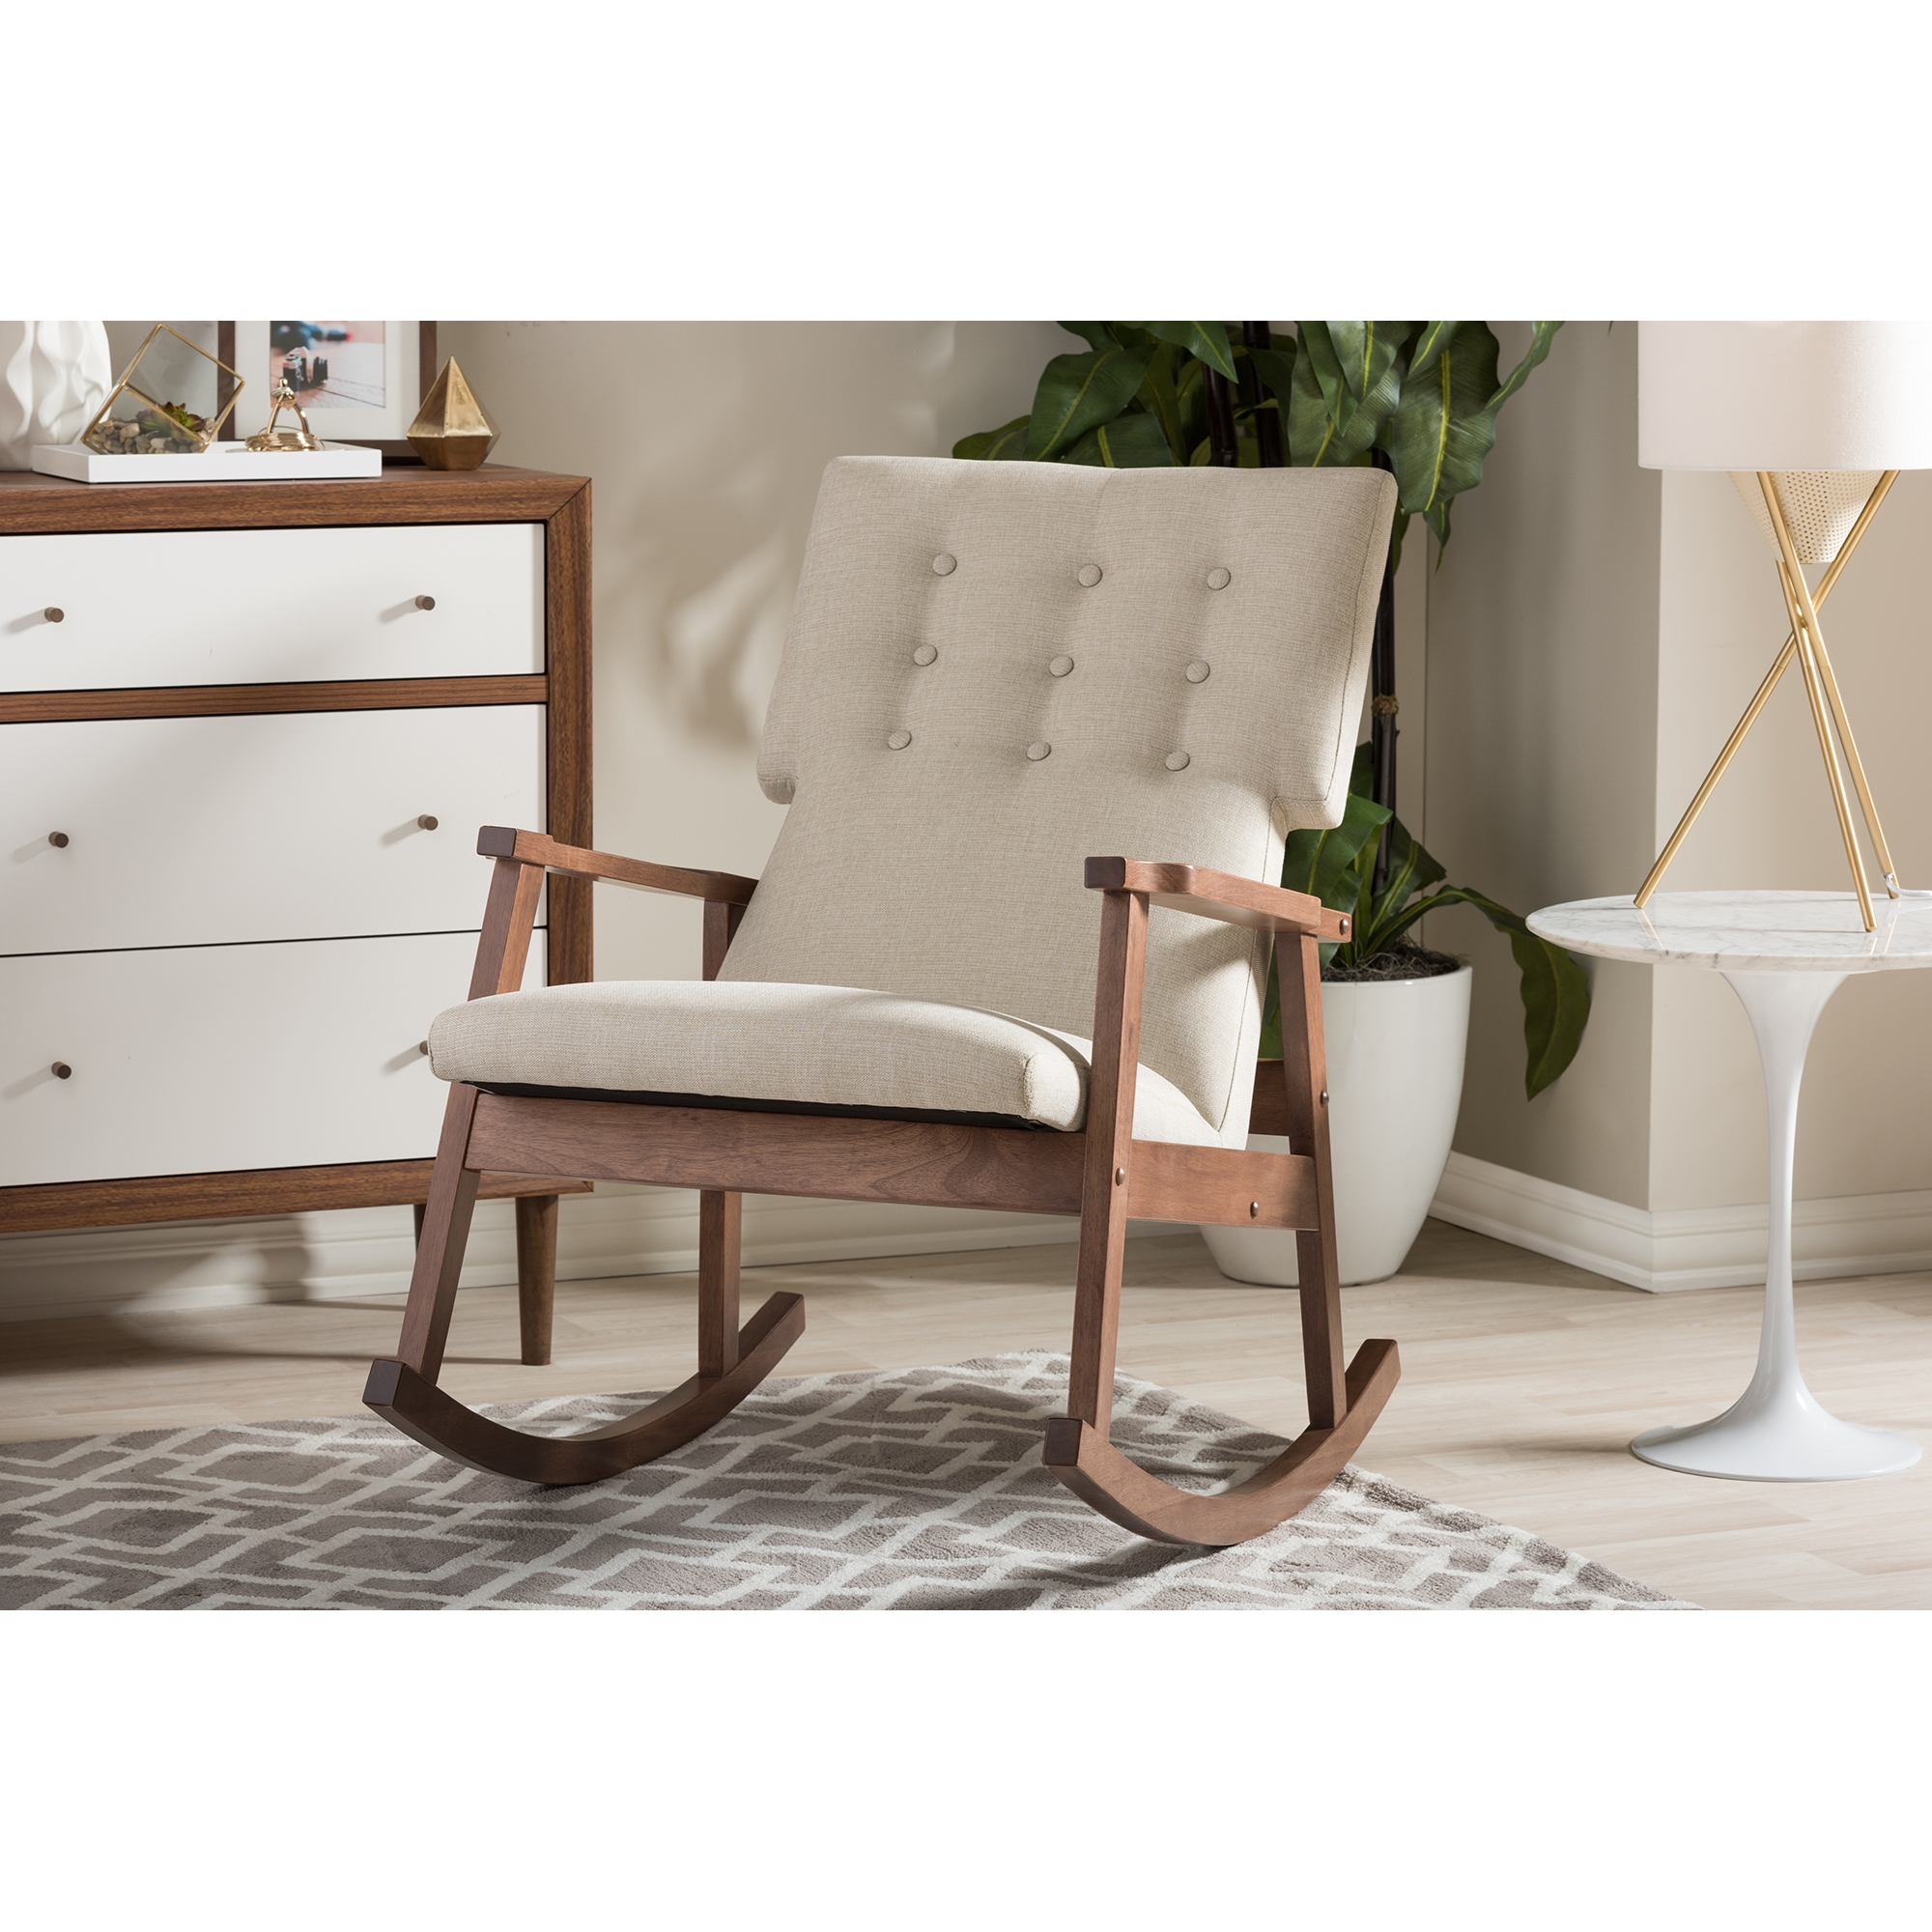 ... Baxton Studio Agatha Mid Century Modern Light Beige Fabric Upholstered  Button Tufted Rocking Chair